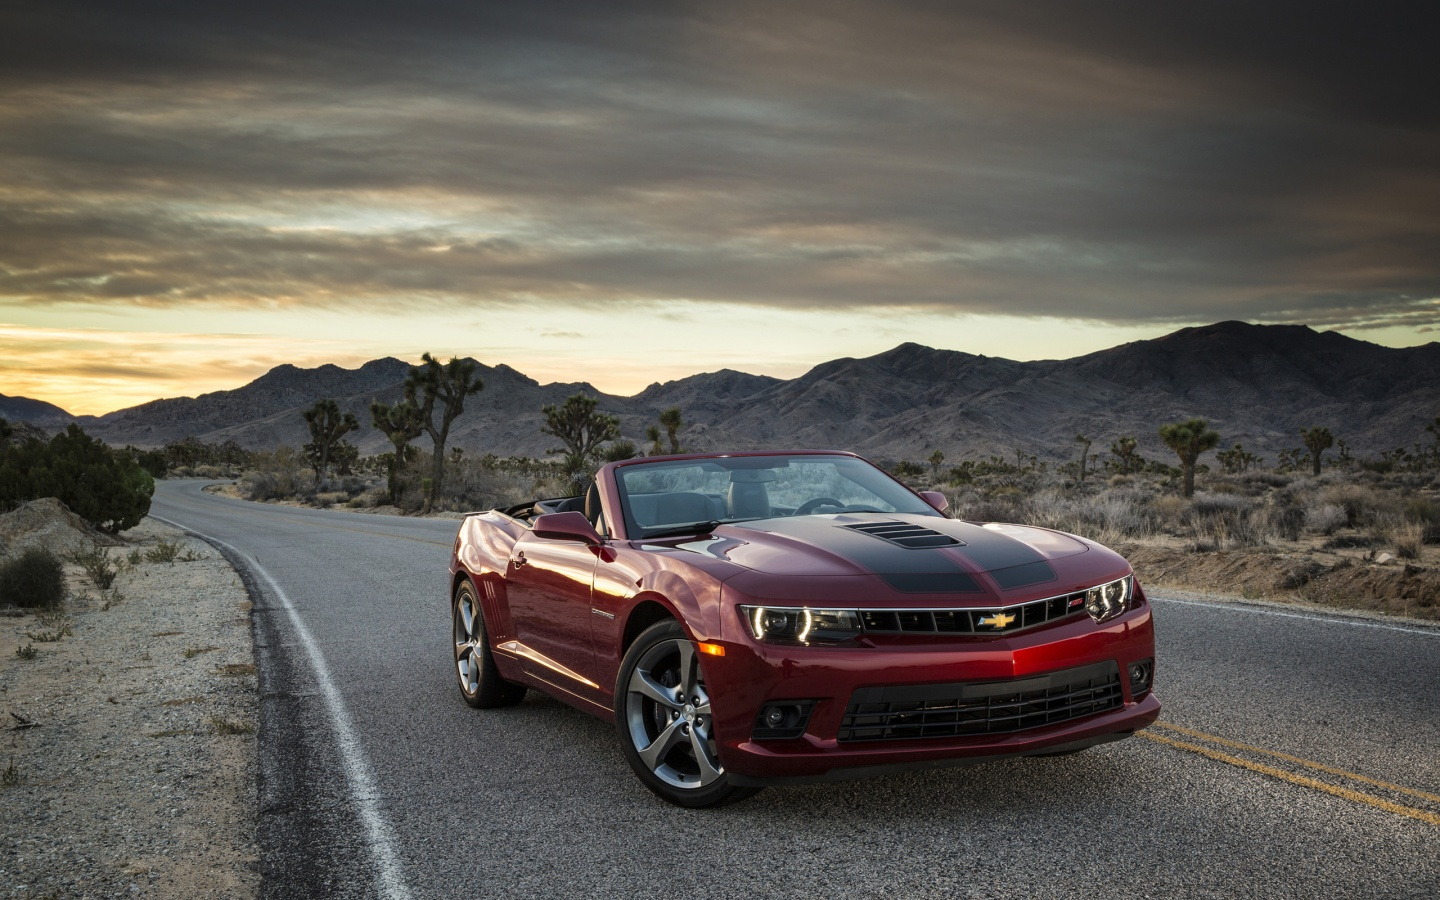 2015 Chevrolet Camaro SS Convertible Wallpaper HD Car 1440x900